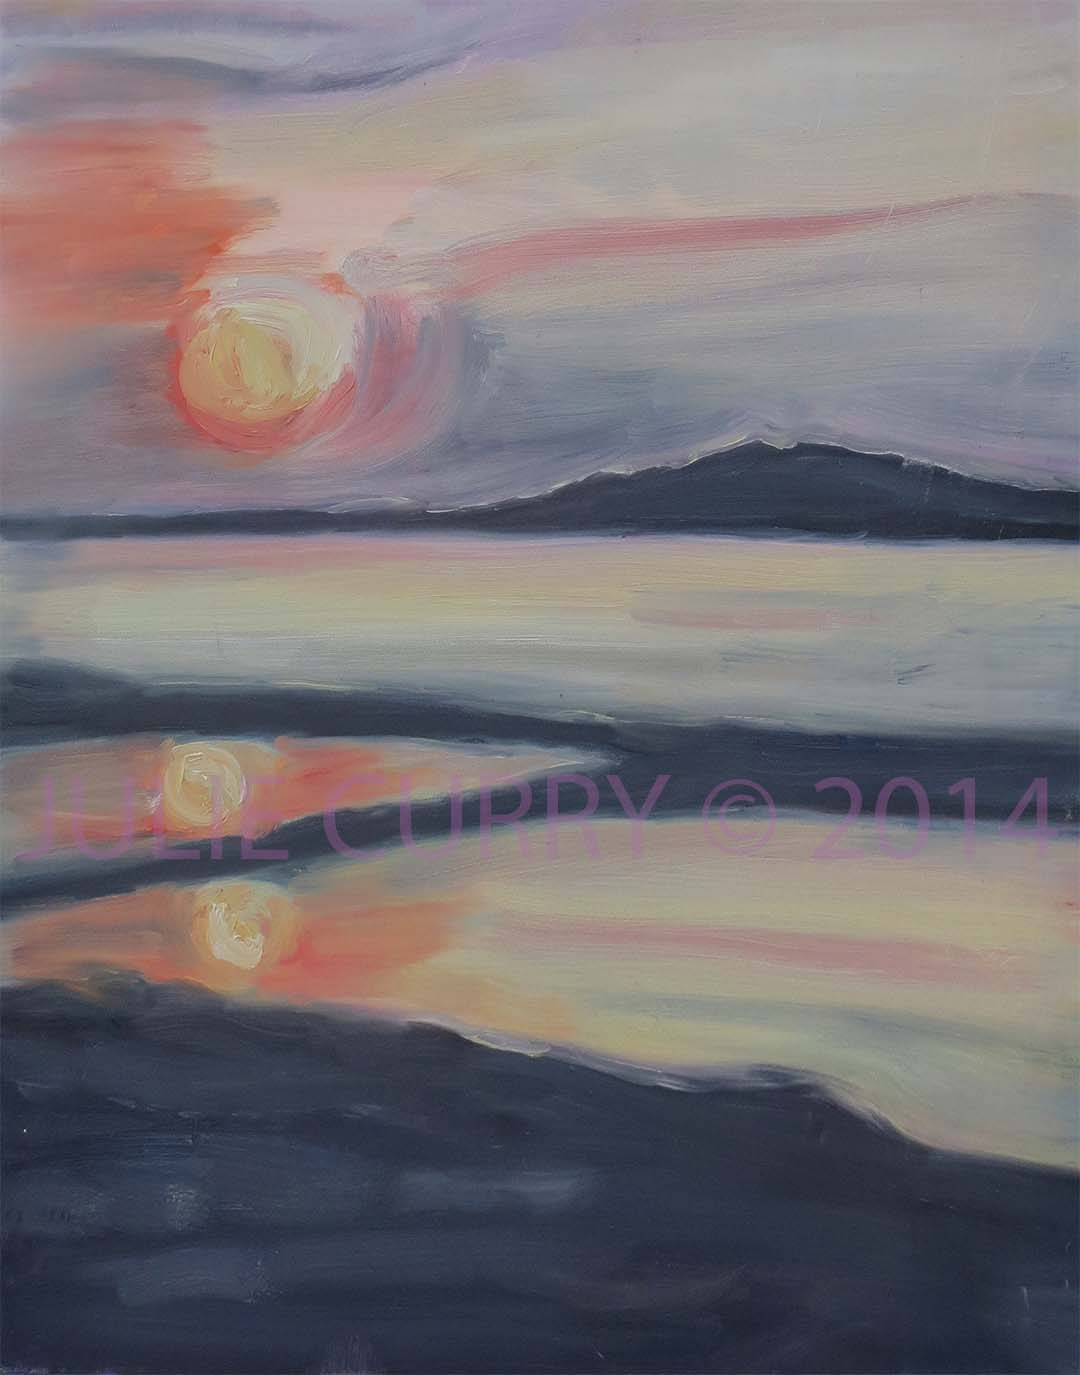 An oil painting portrait a landscape at dawn by Julie Curry an oil painter